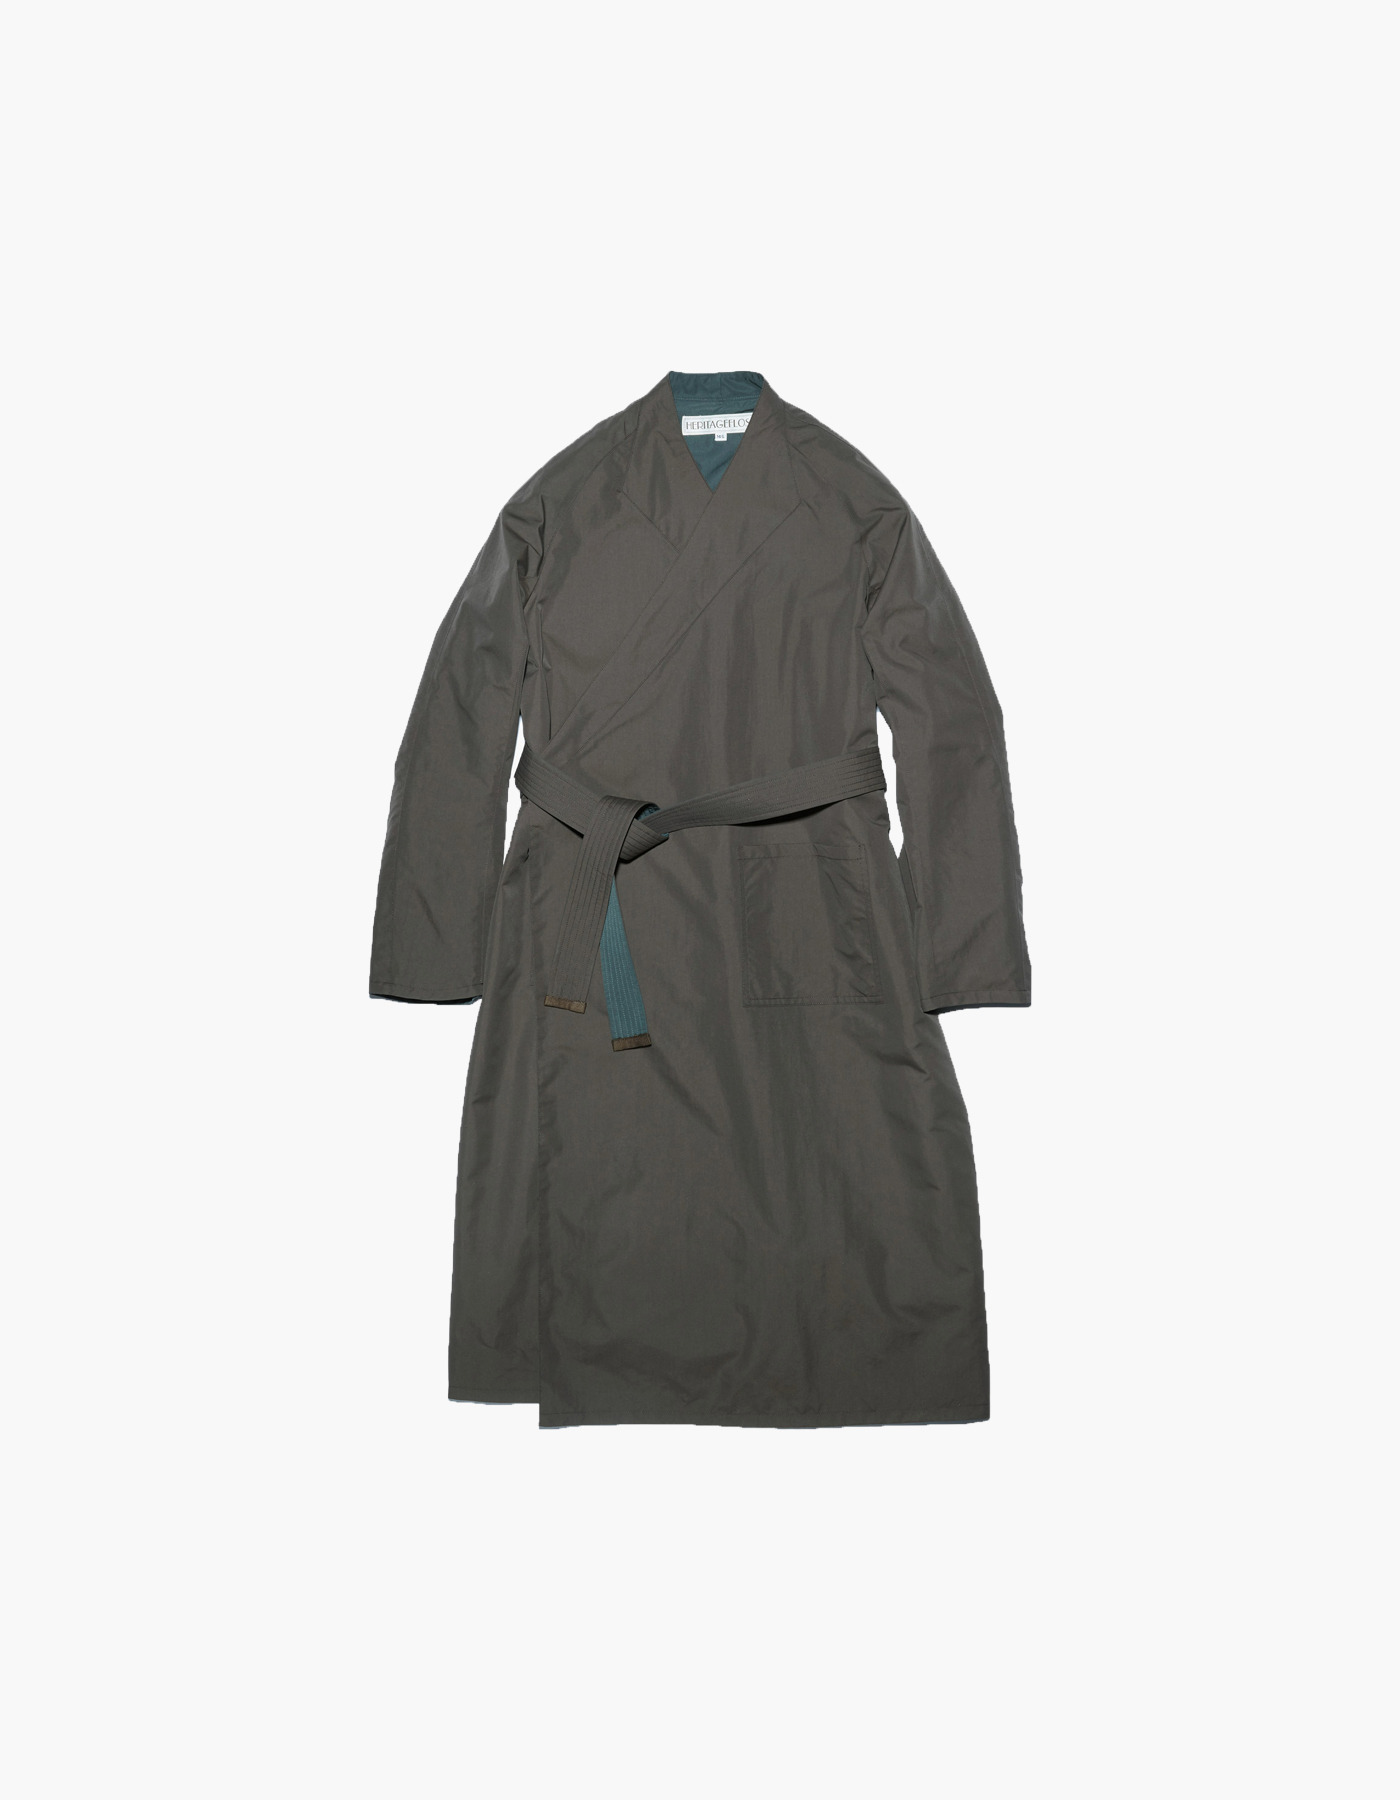 ROBE COAT / BROWN